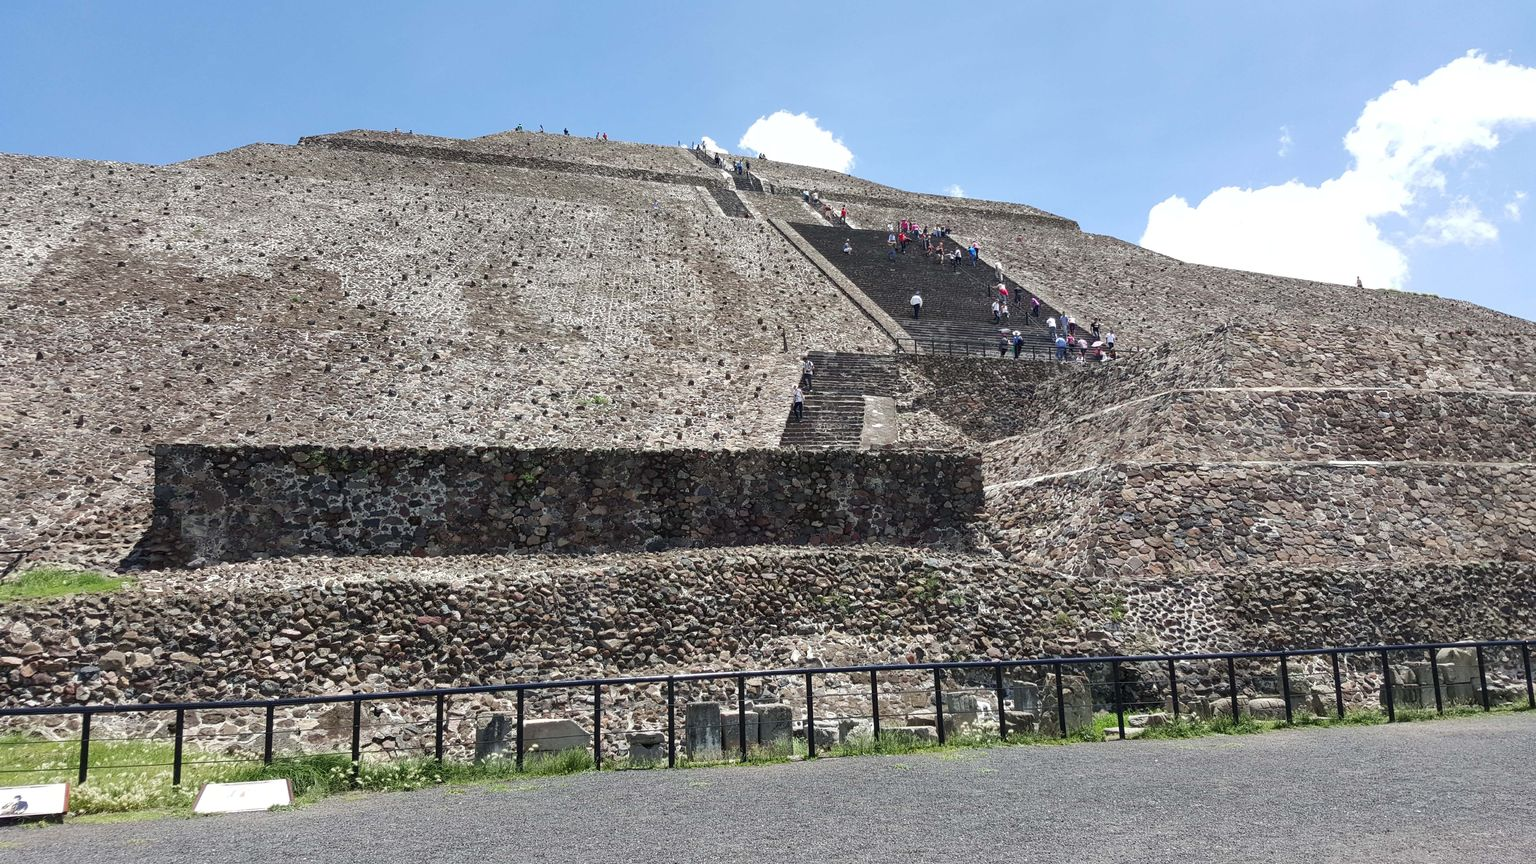 MORE PHOTOS, Teotihuacán Full Day Tour from Mexico City